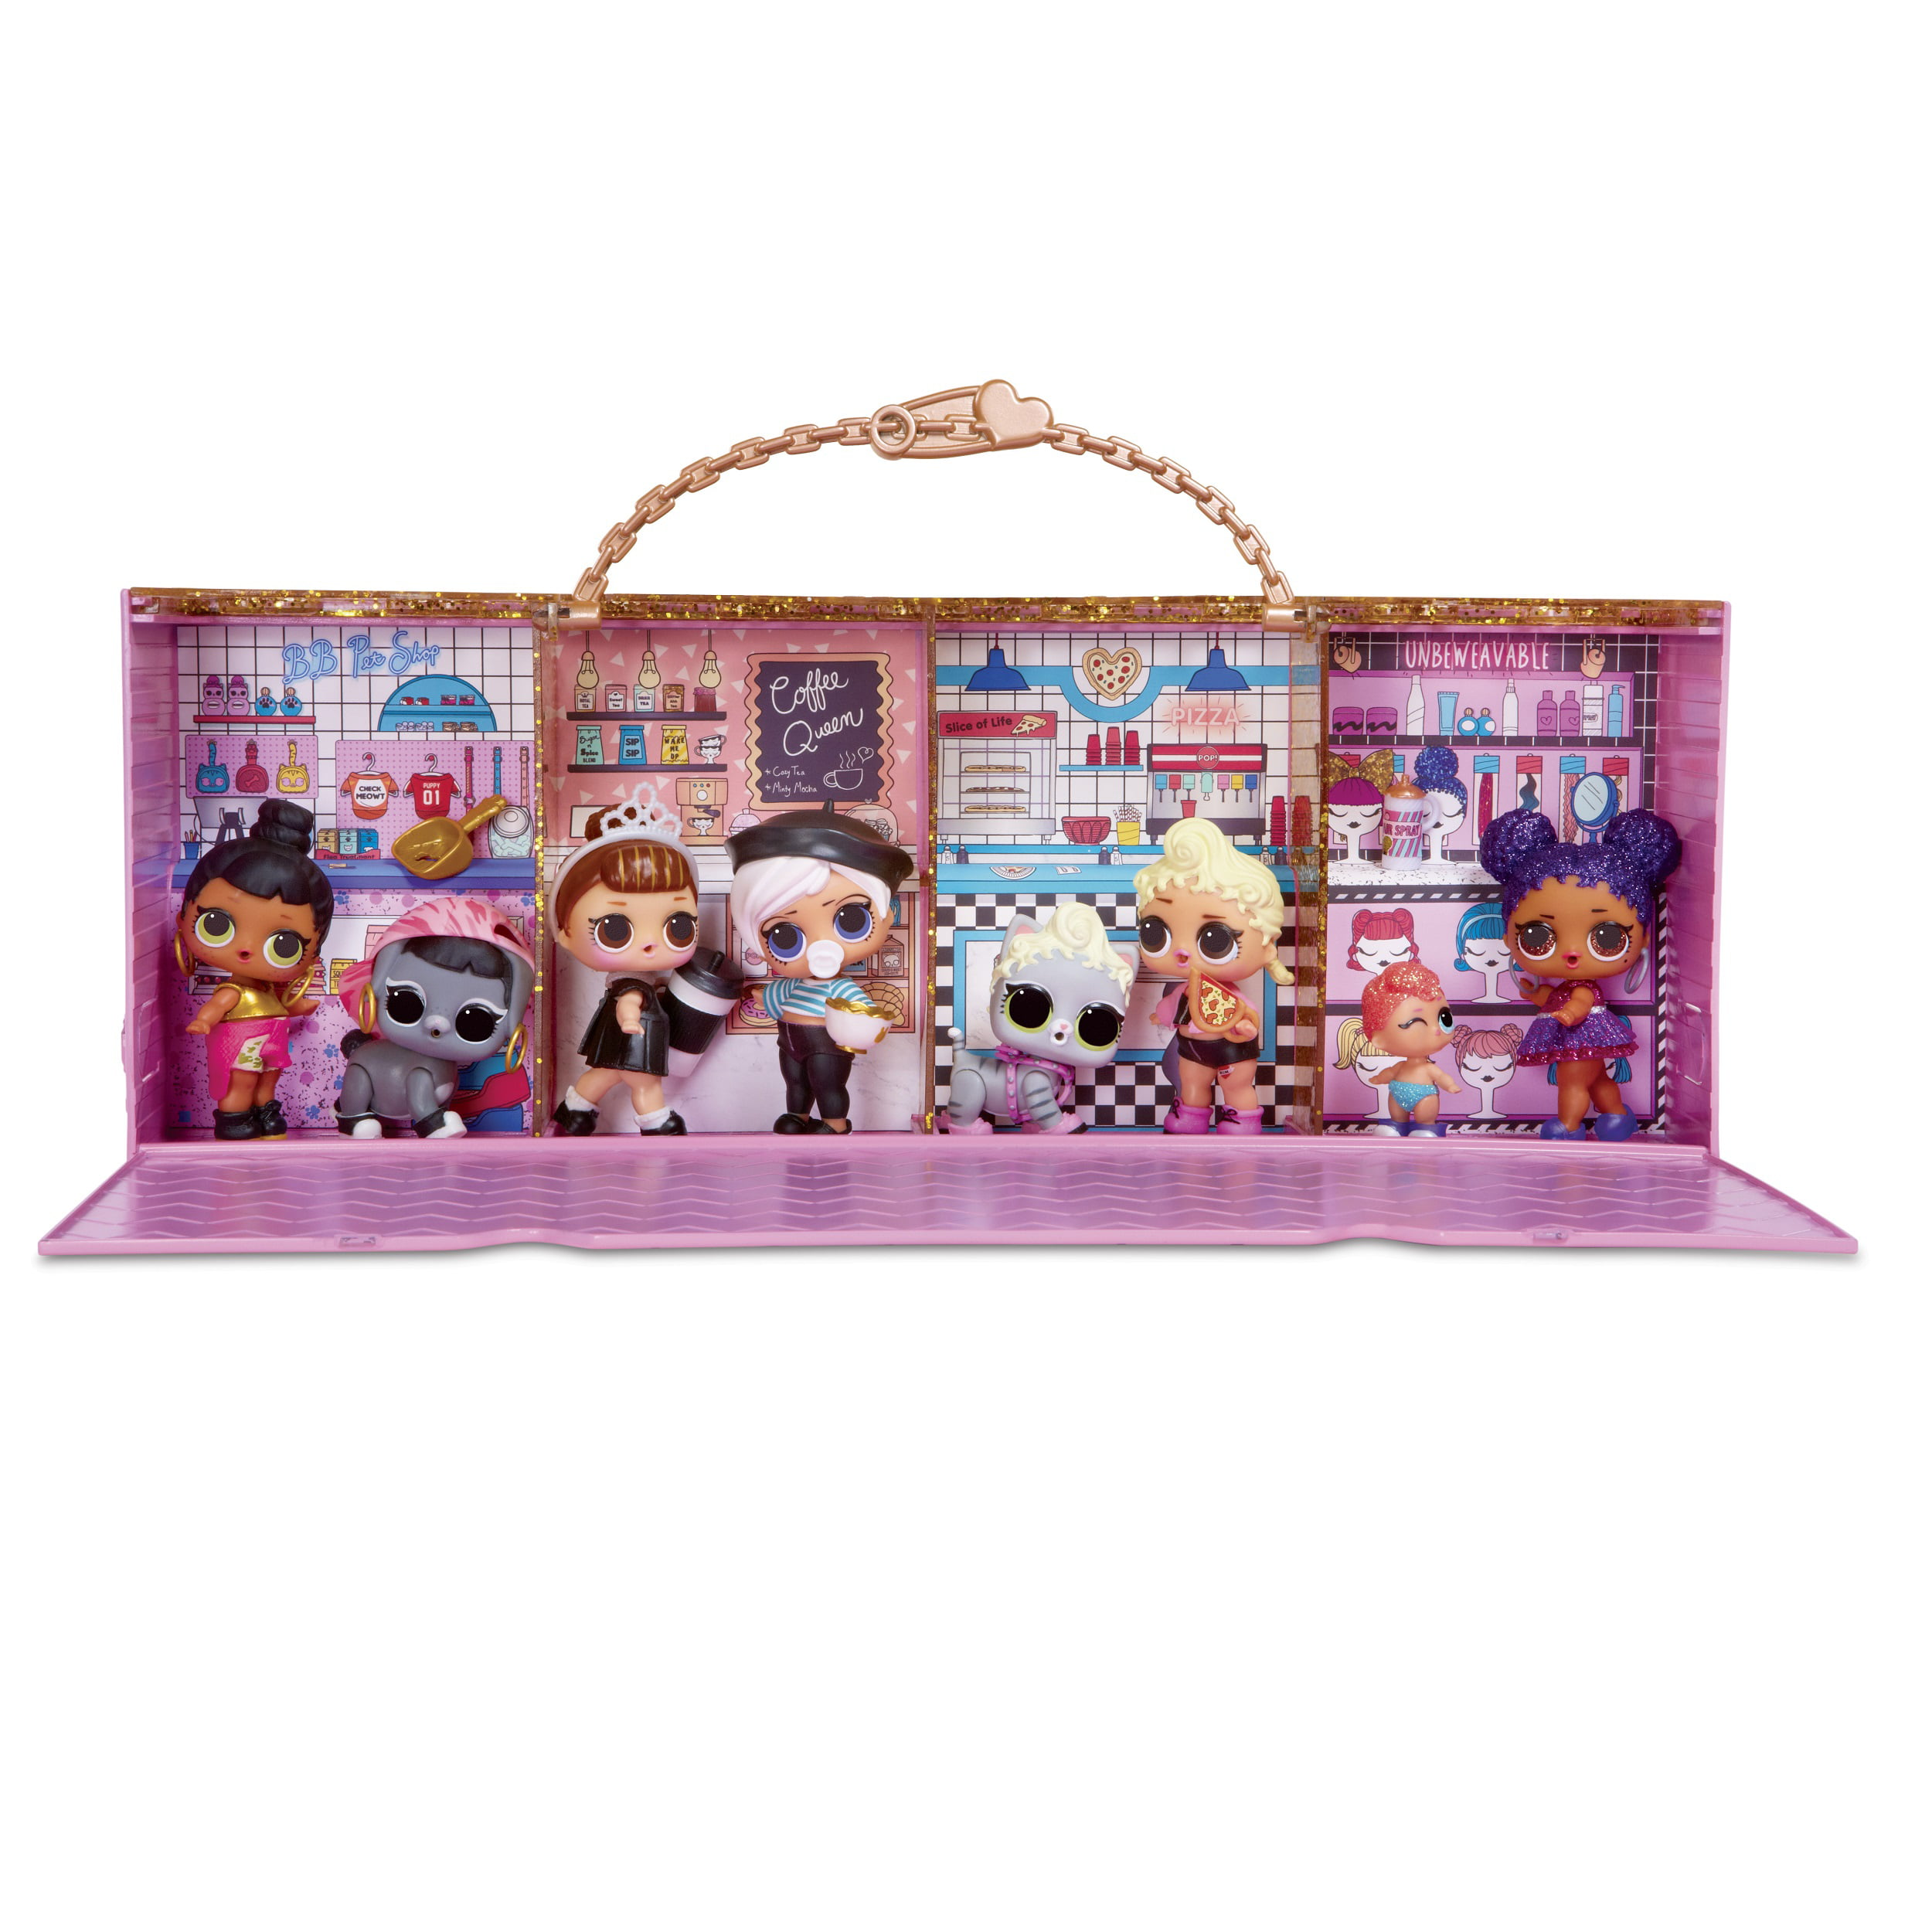 Display with 1 Exclusive 3 in 1 Pop-Up Store L.O.L Surprise Carrying Case